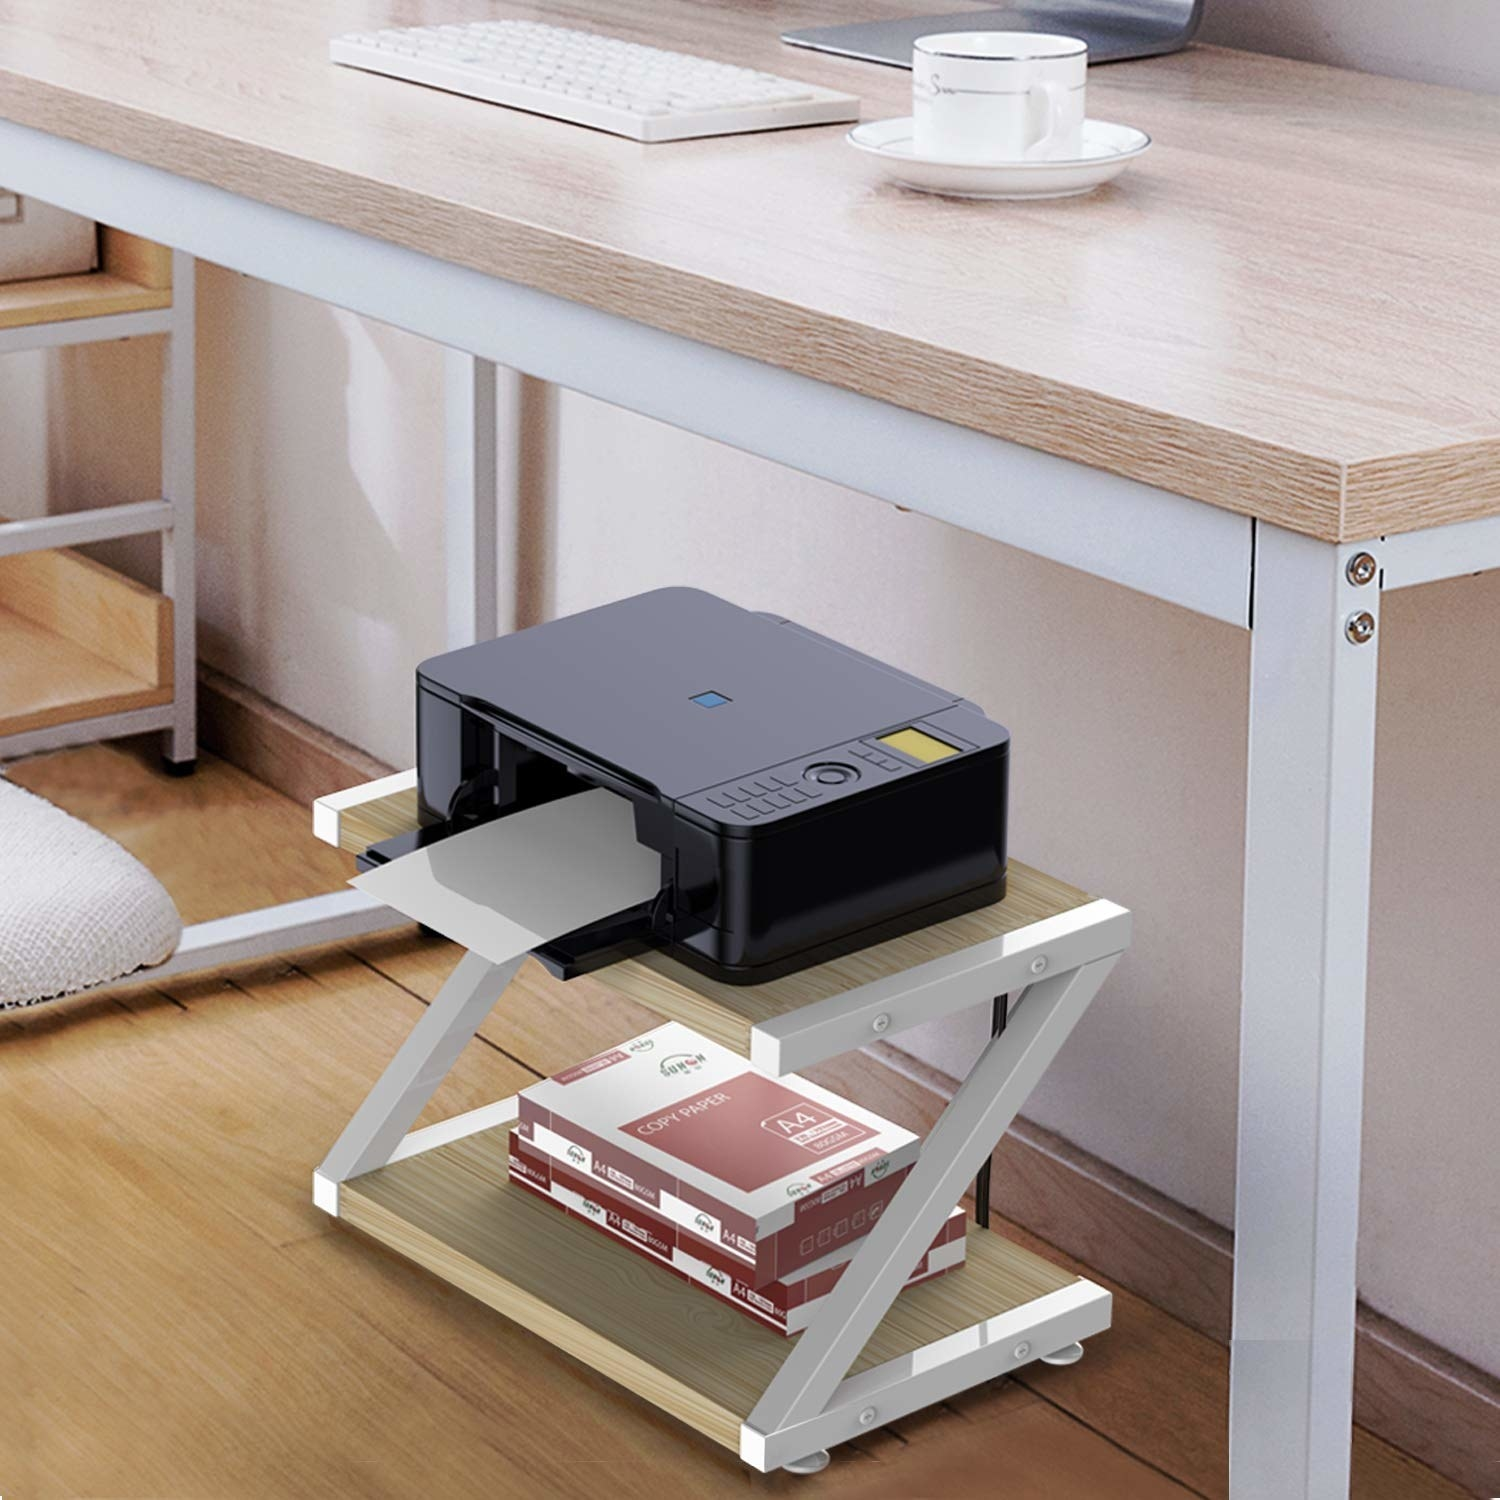 A two-tier shelf with a printer on the top shelf and a stack of paper on the bottom shelf under a desk